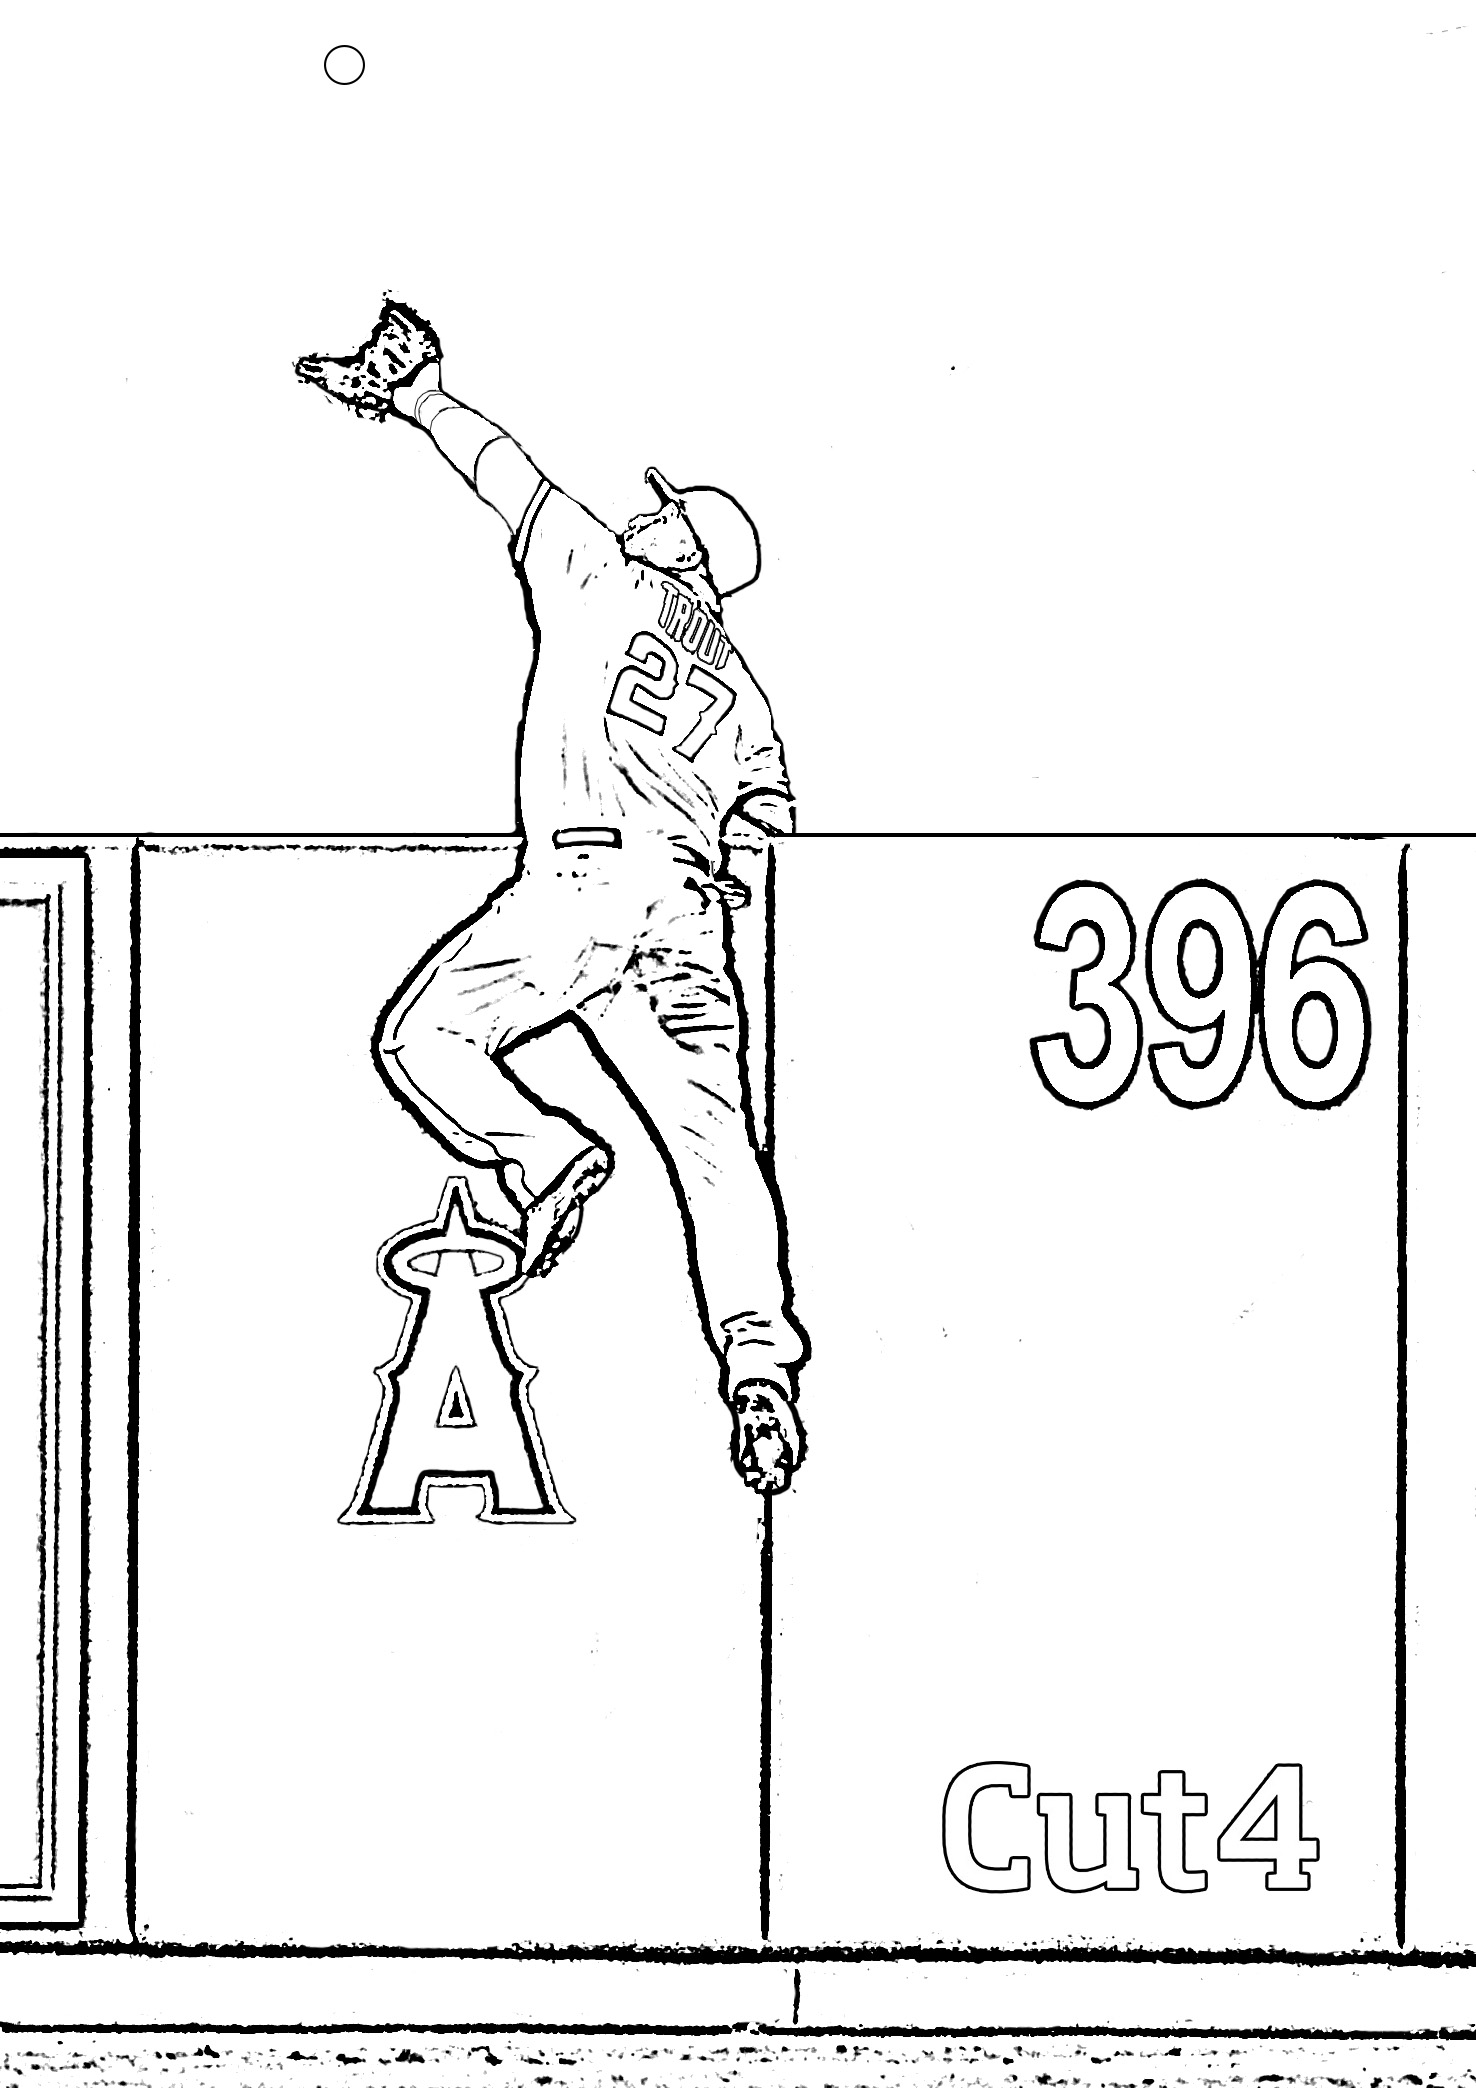 troutcatch - Free Coloring Pages Baseball 2